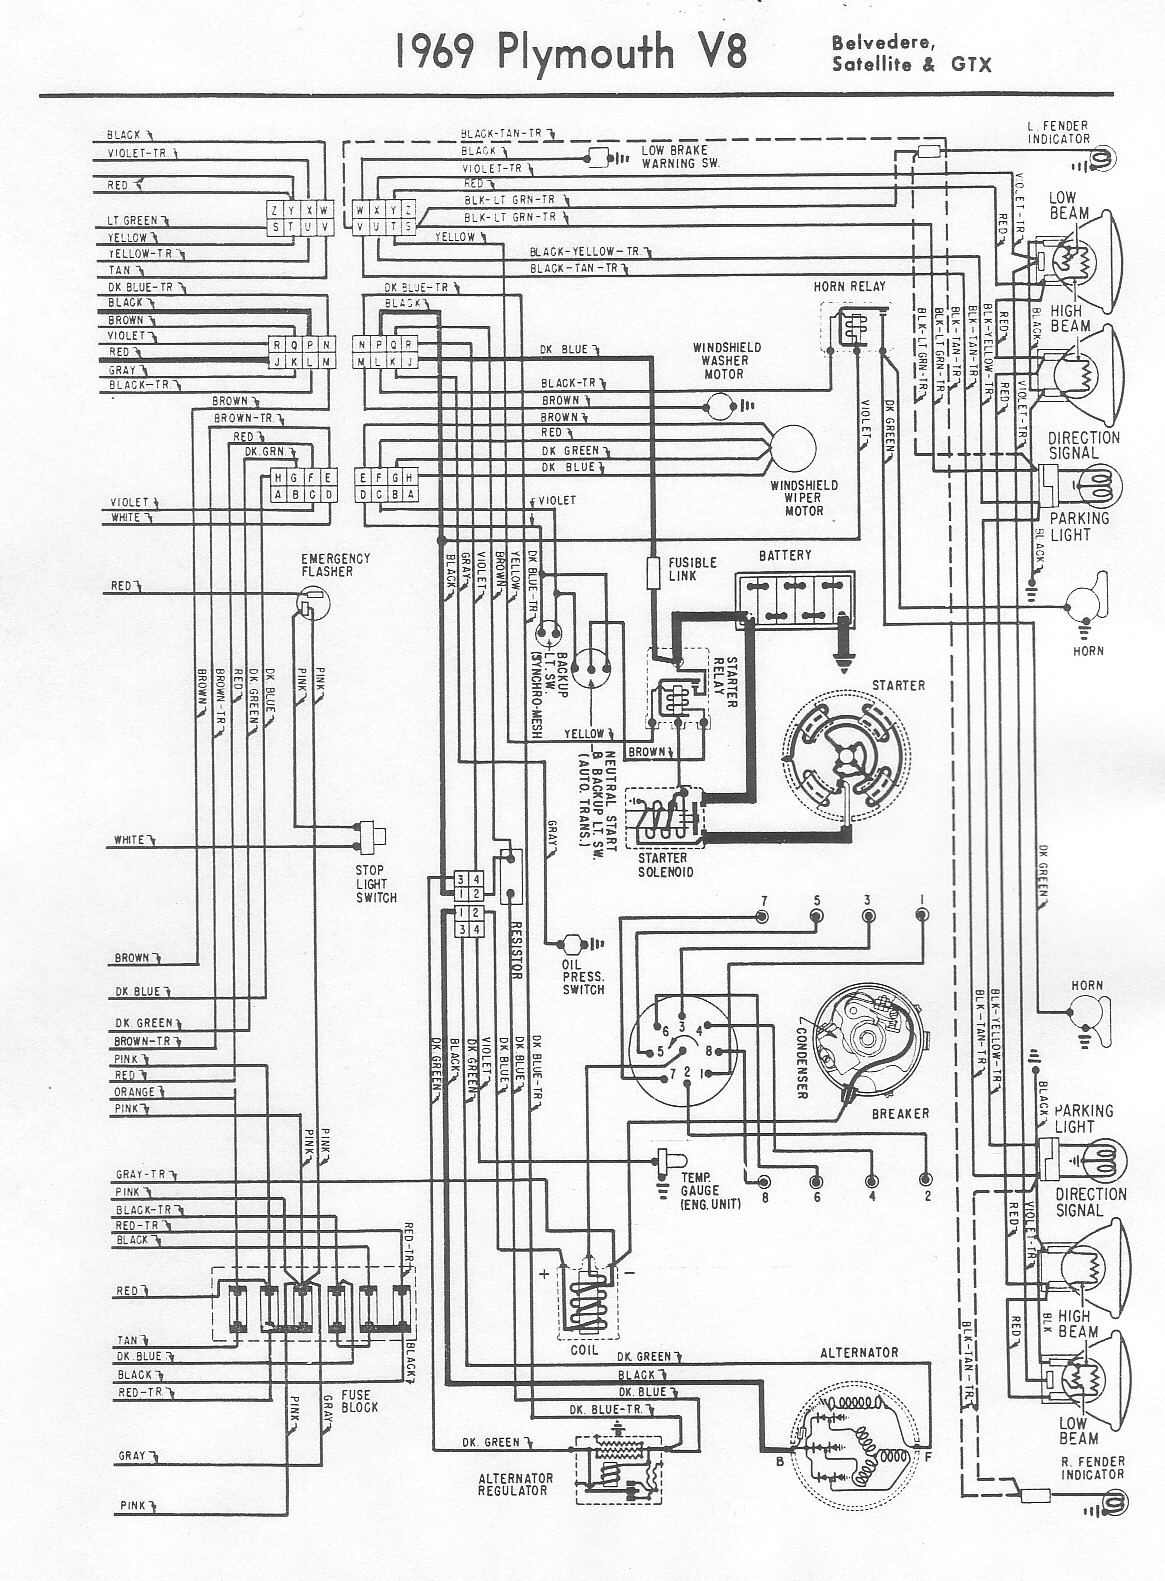 1970 gtx wiring diagram wiring diagram 1956 plymouth belvedere wiring diagram 1967 gtx wiring diagram #4